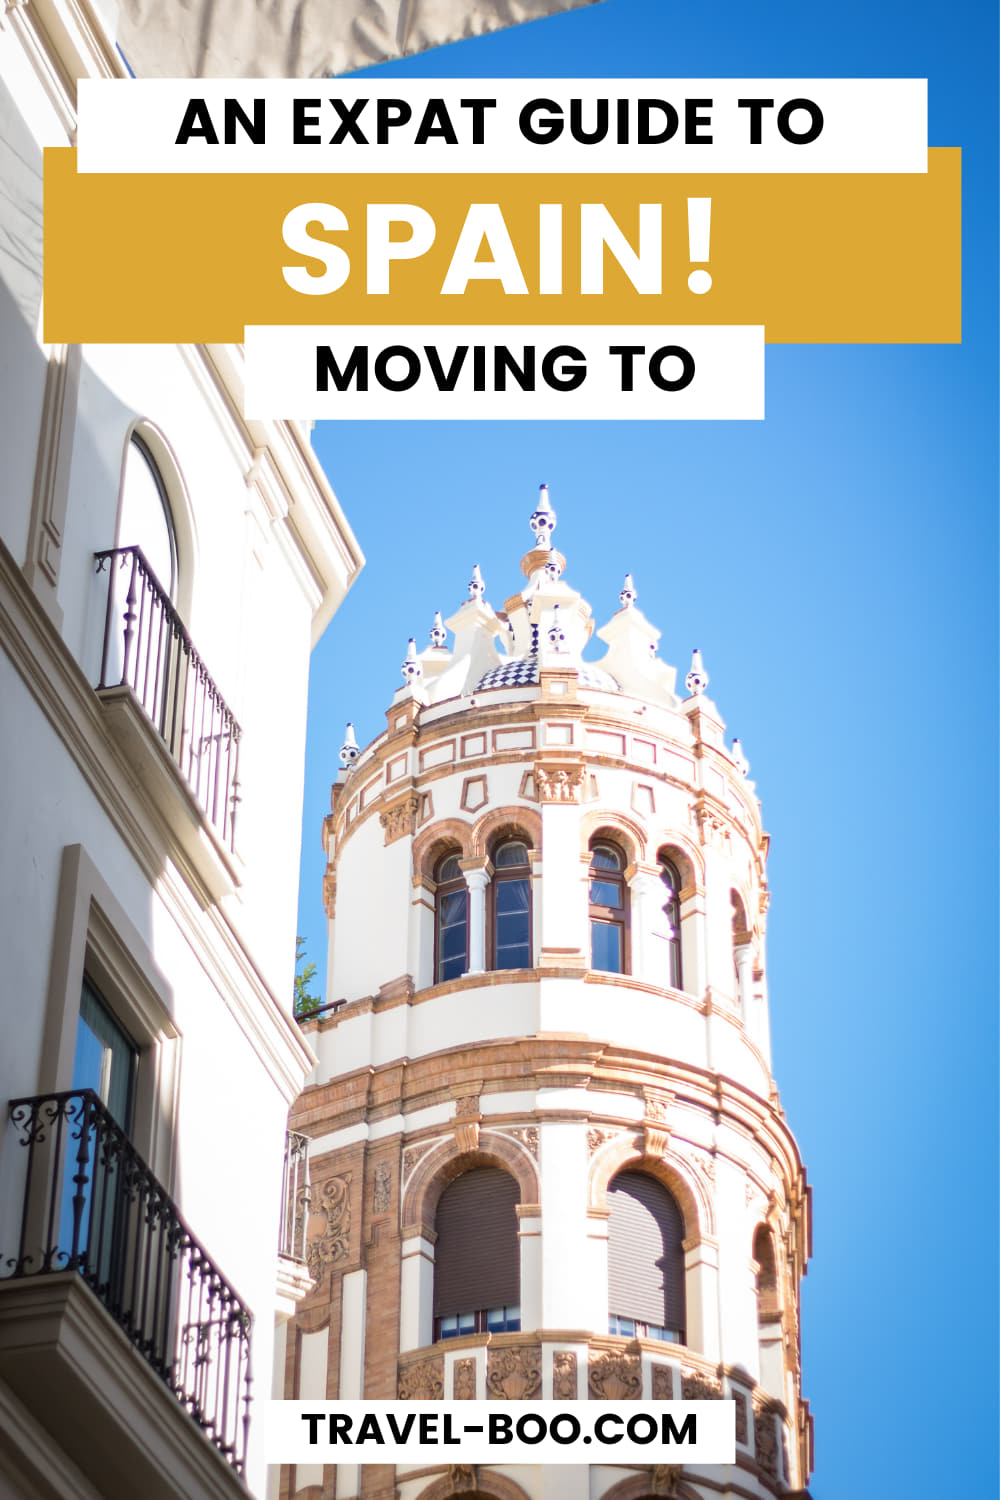 Moving to Spain - A Complete Expat Guide to Living in Spain! Living in Spain, Spain Expat, Expats in Spain, Spain Travel Guide, Spain Travel, Moving to Spain!